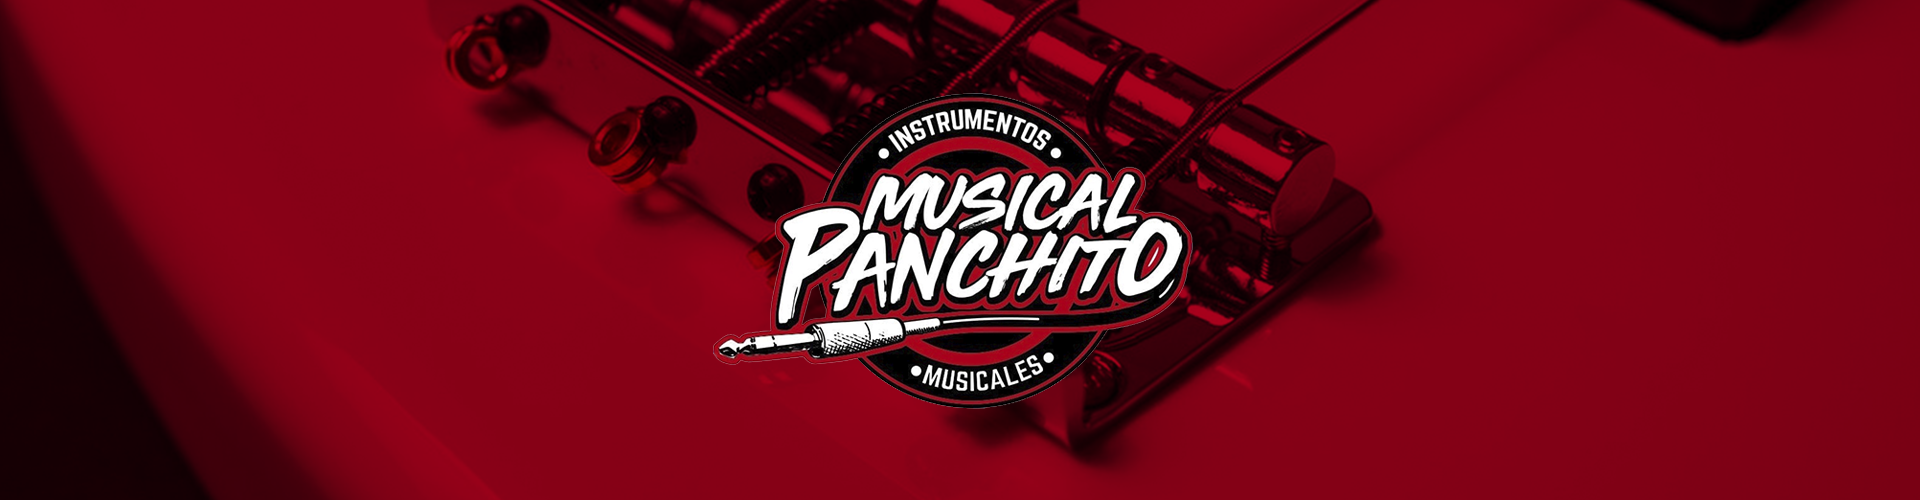 Musical Panchito